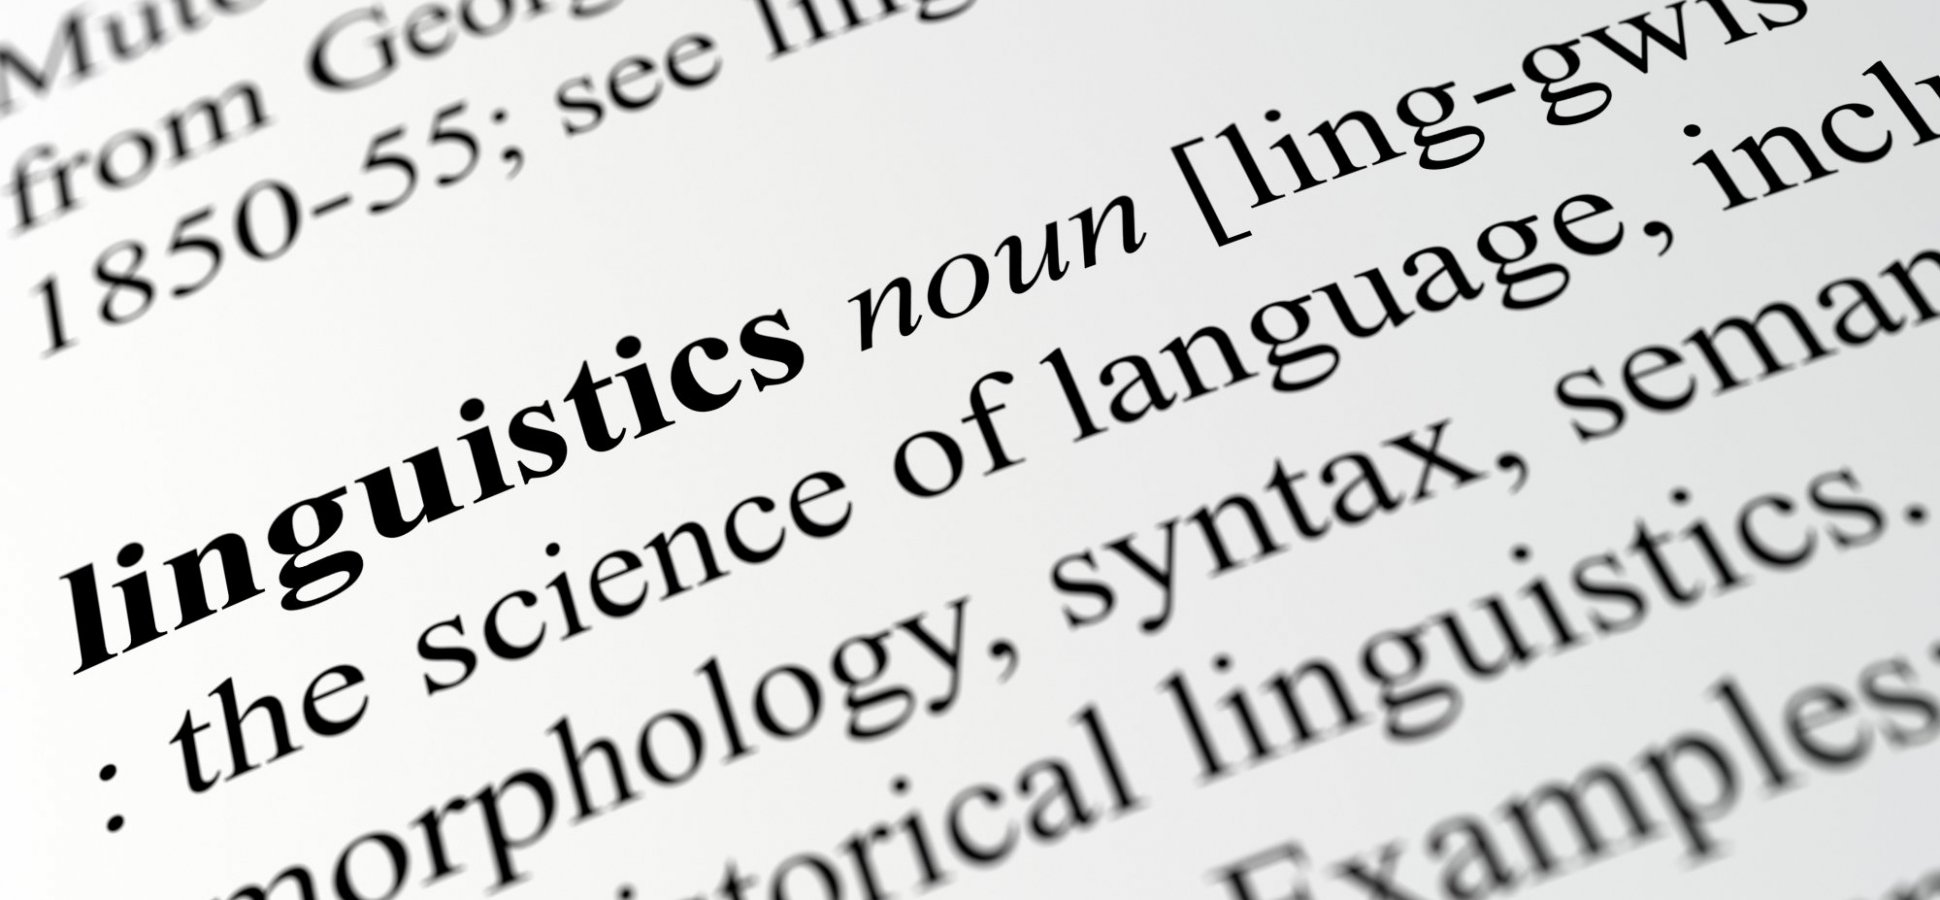 To Learn About Innovation, Study the Linguistics.